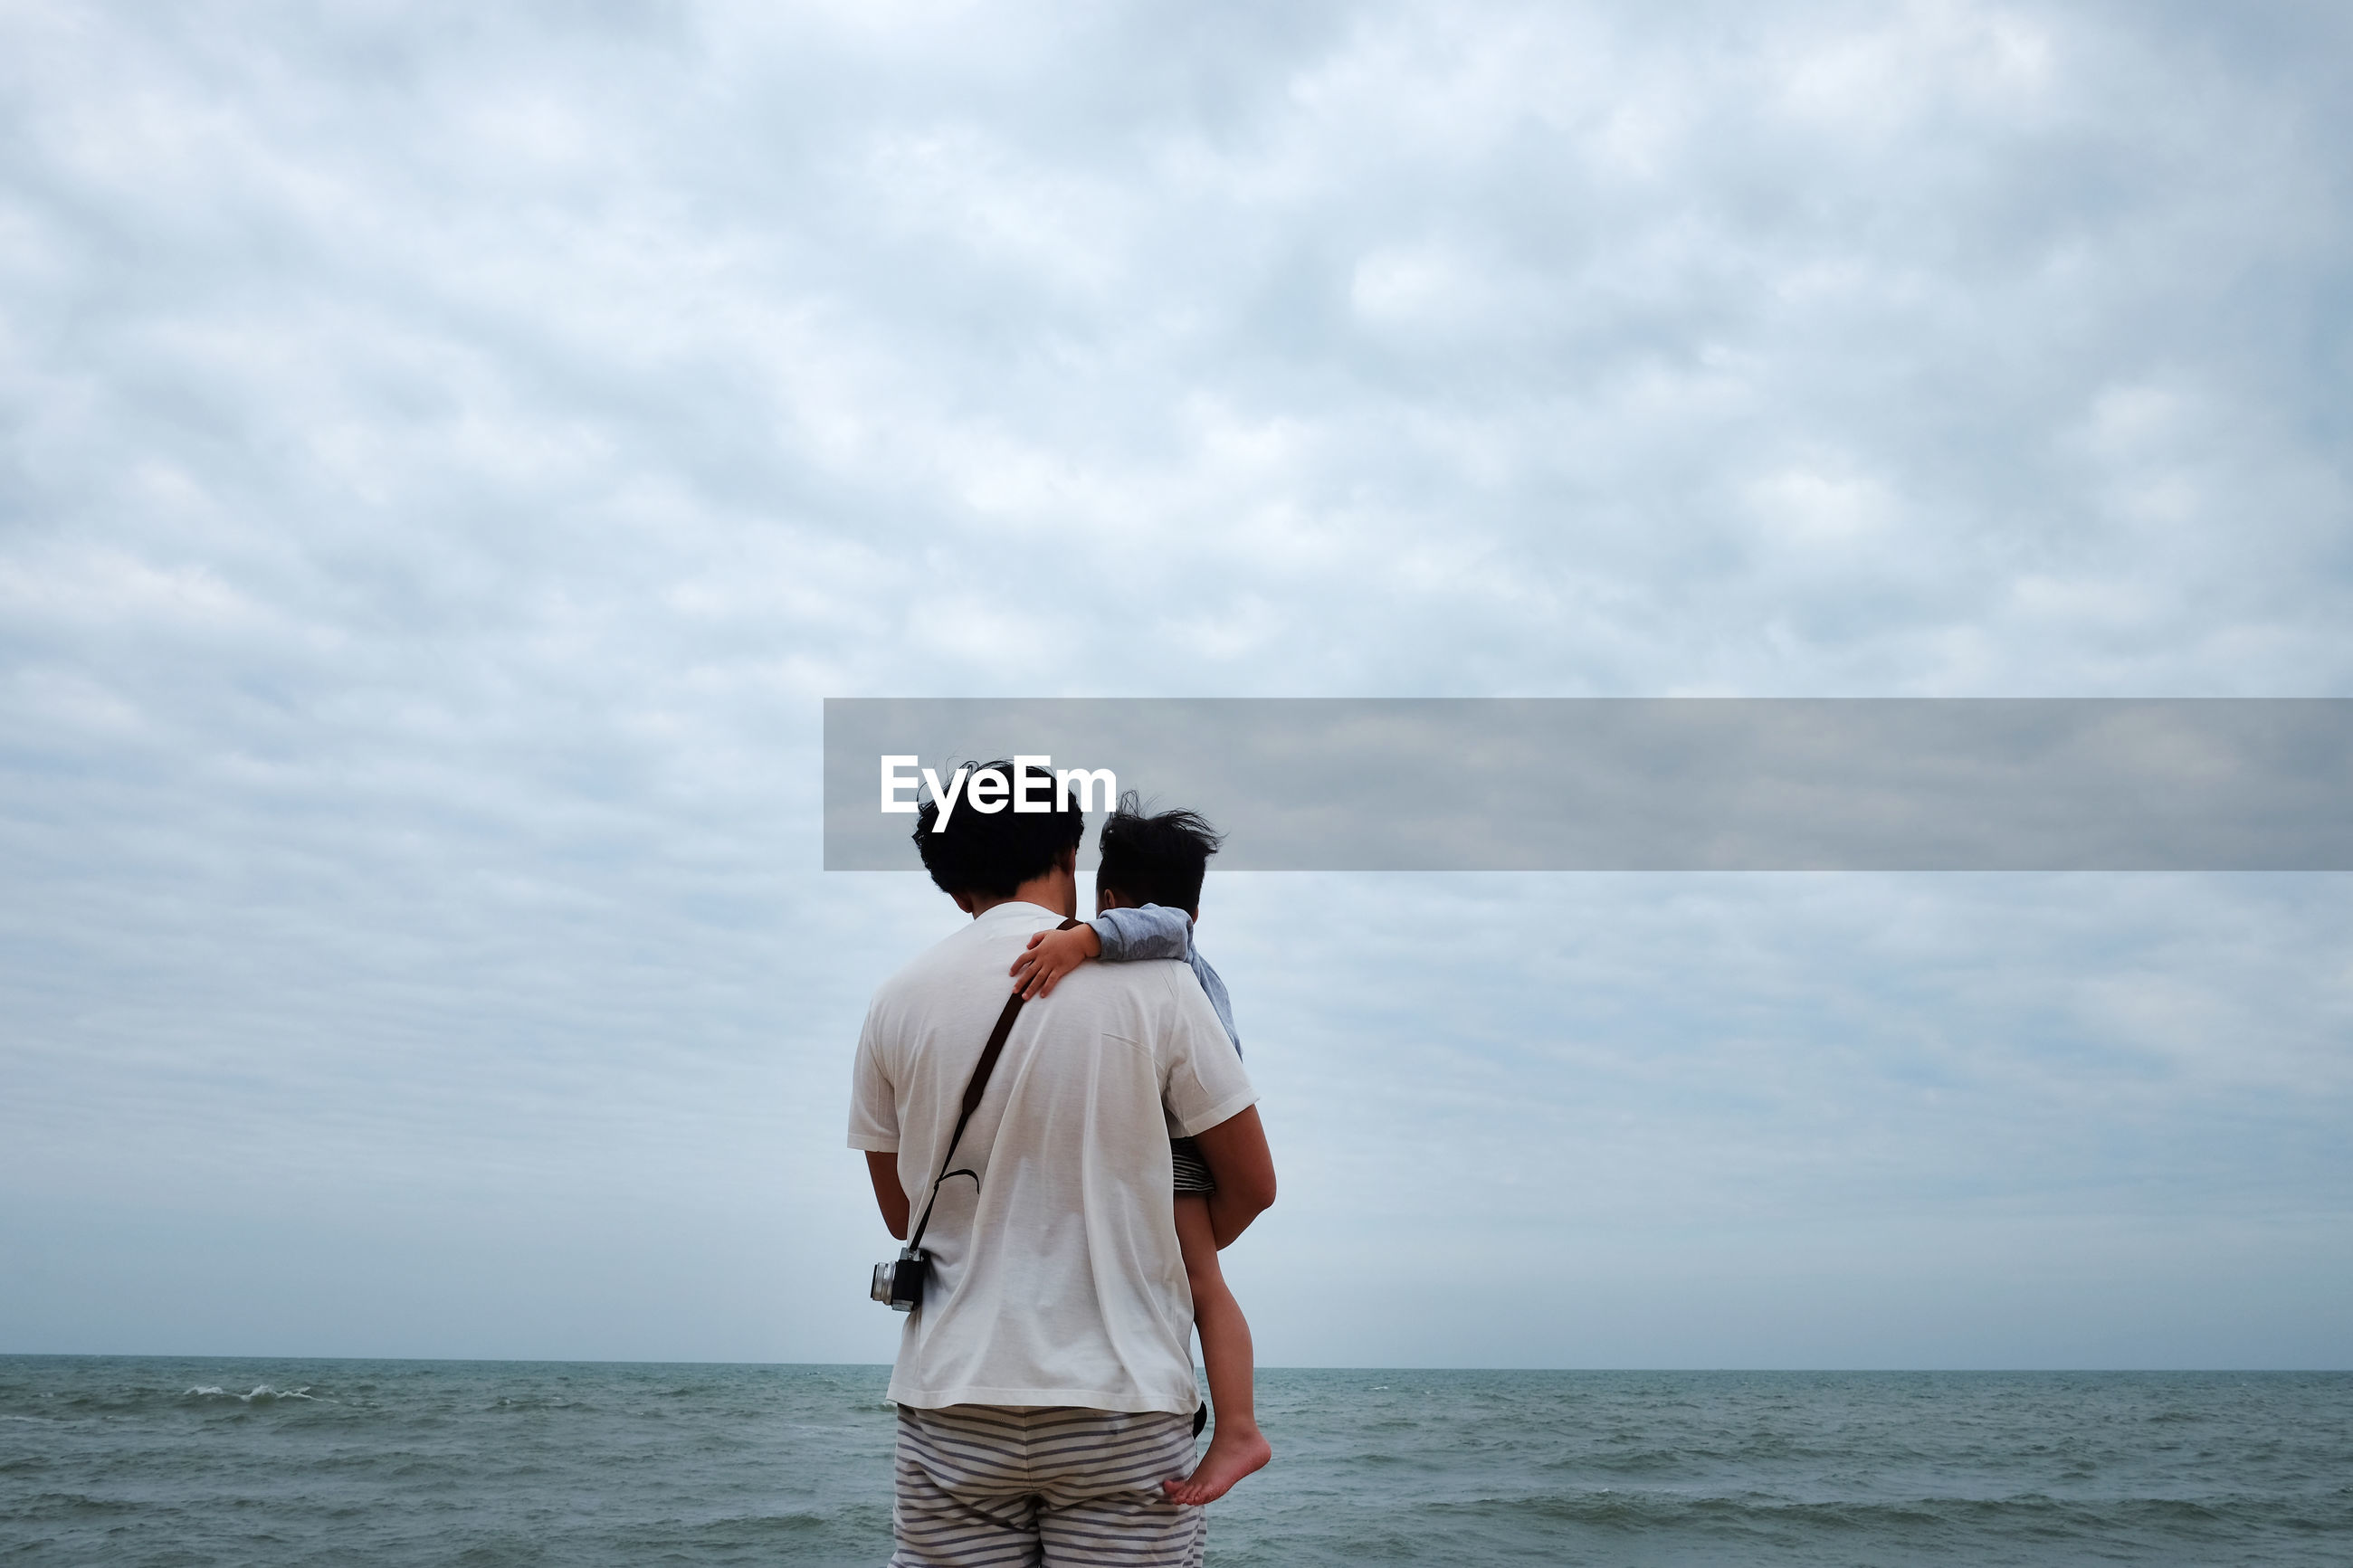 Rear view of father carrying son at beach against cloudy sky